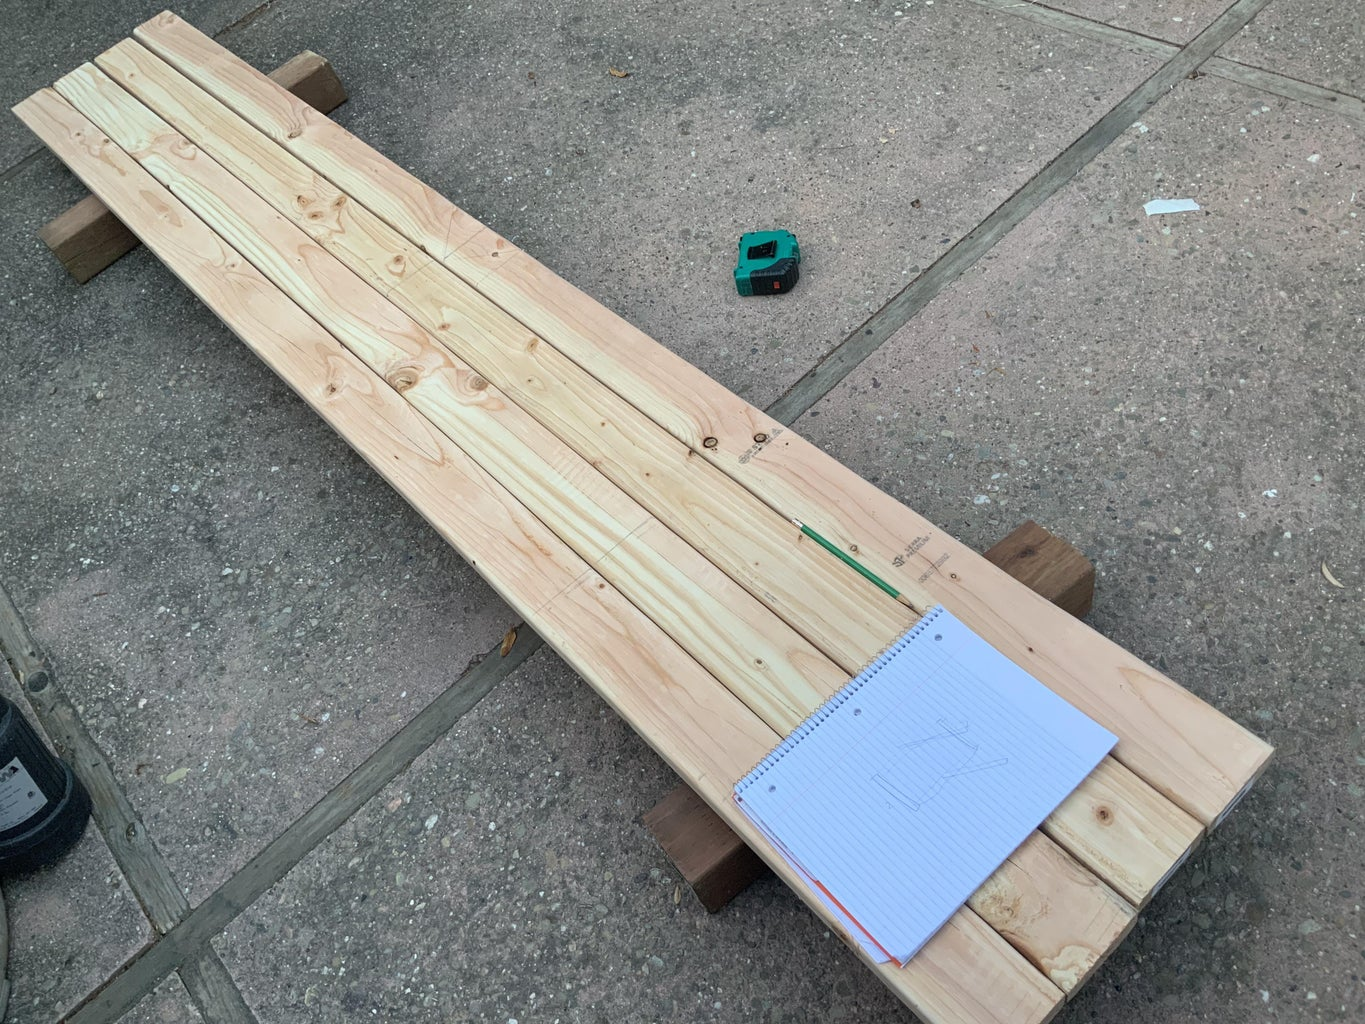 Cut the 2x4 to Size